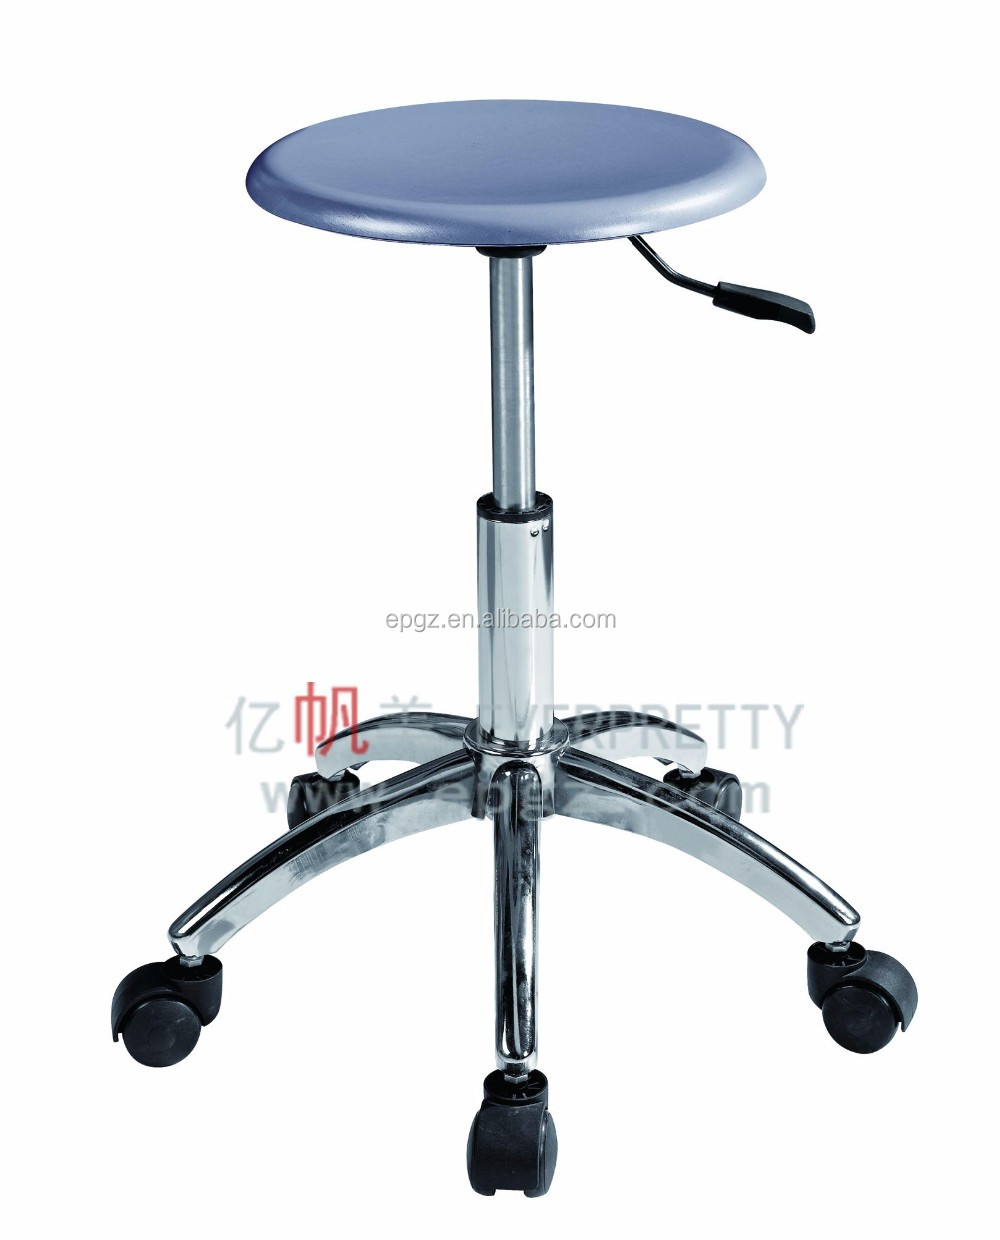 High Quality Lab stool, Height adjustable with swivel lab stool for laboratory